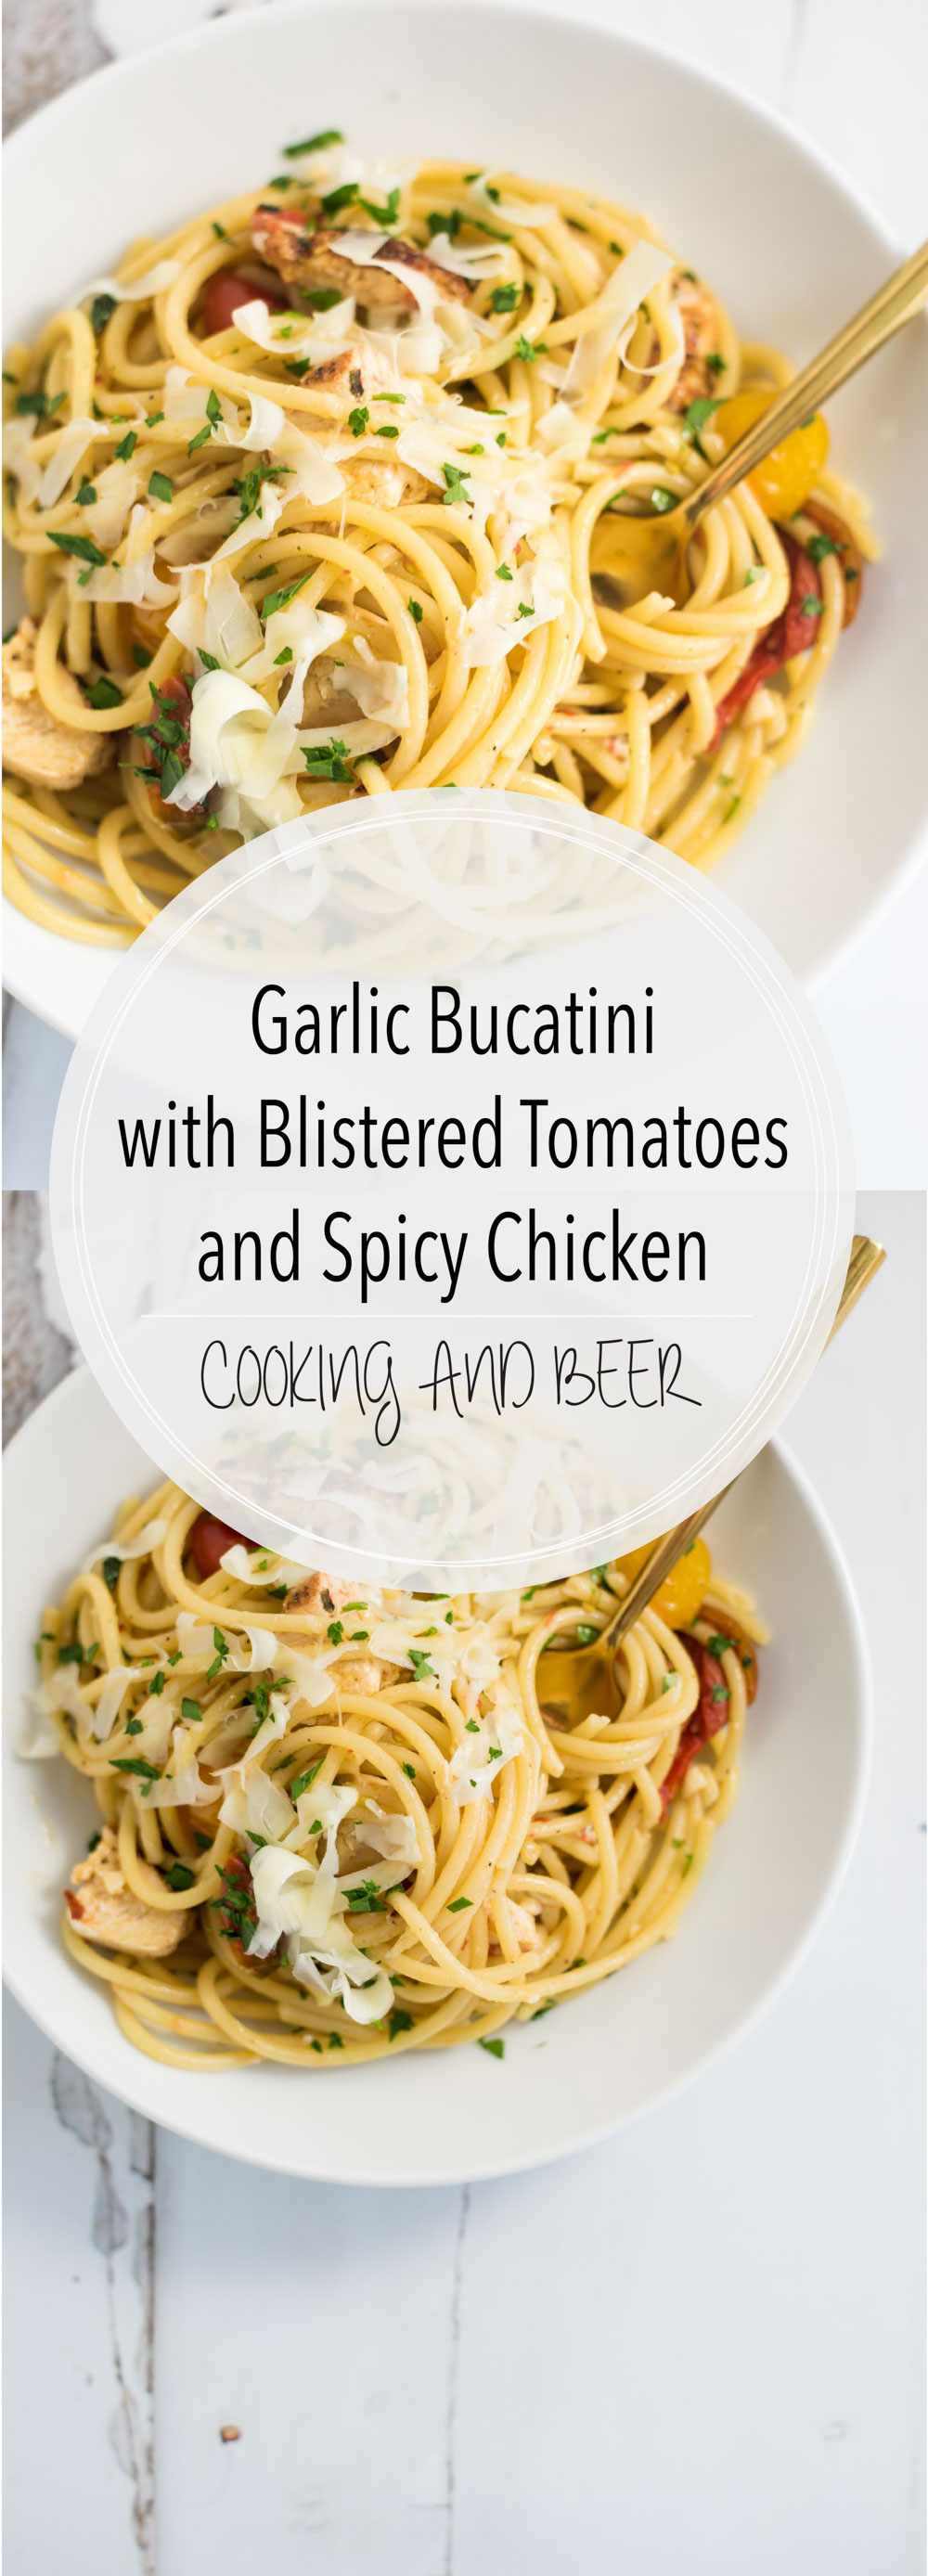 This garlic bucatini with blistered tomatoes and spicy chicken is a pasta-lover's dream. It is packed full of light and delicious flavor!